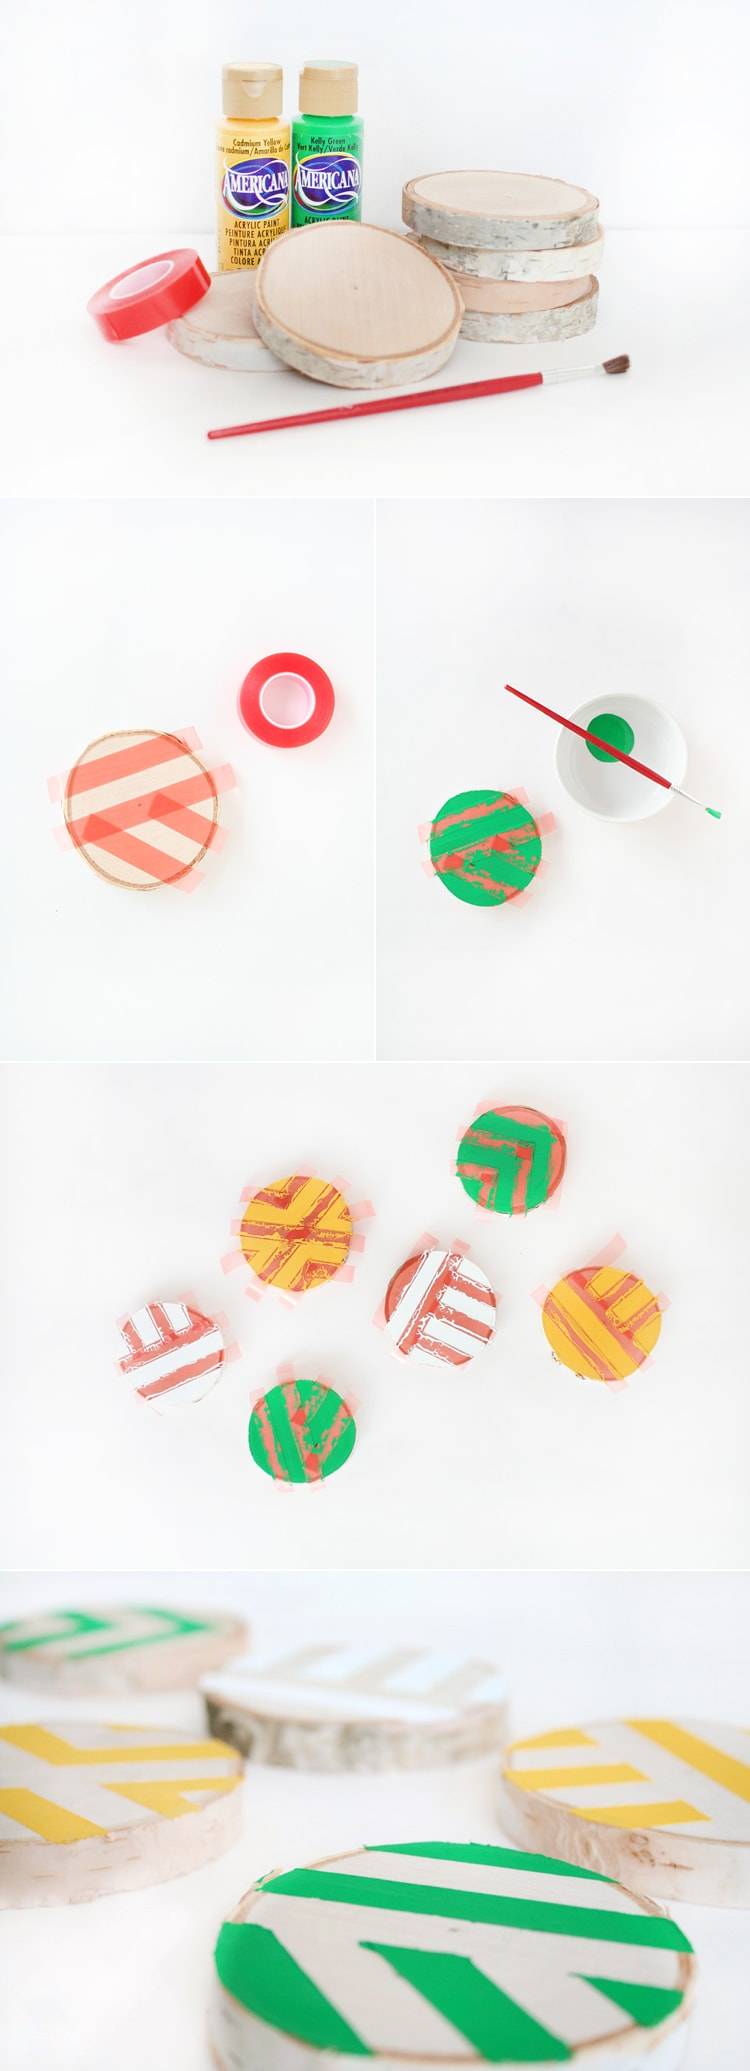 Steps DIY Painted Wooden Coasters